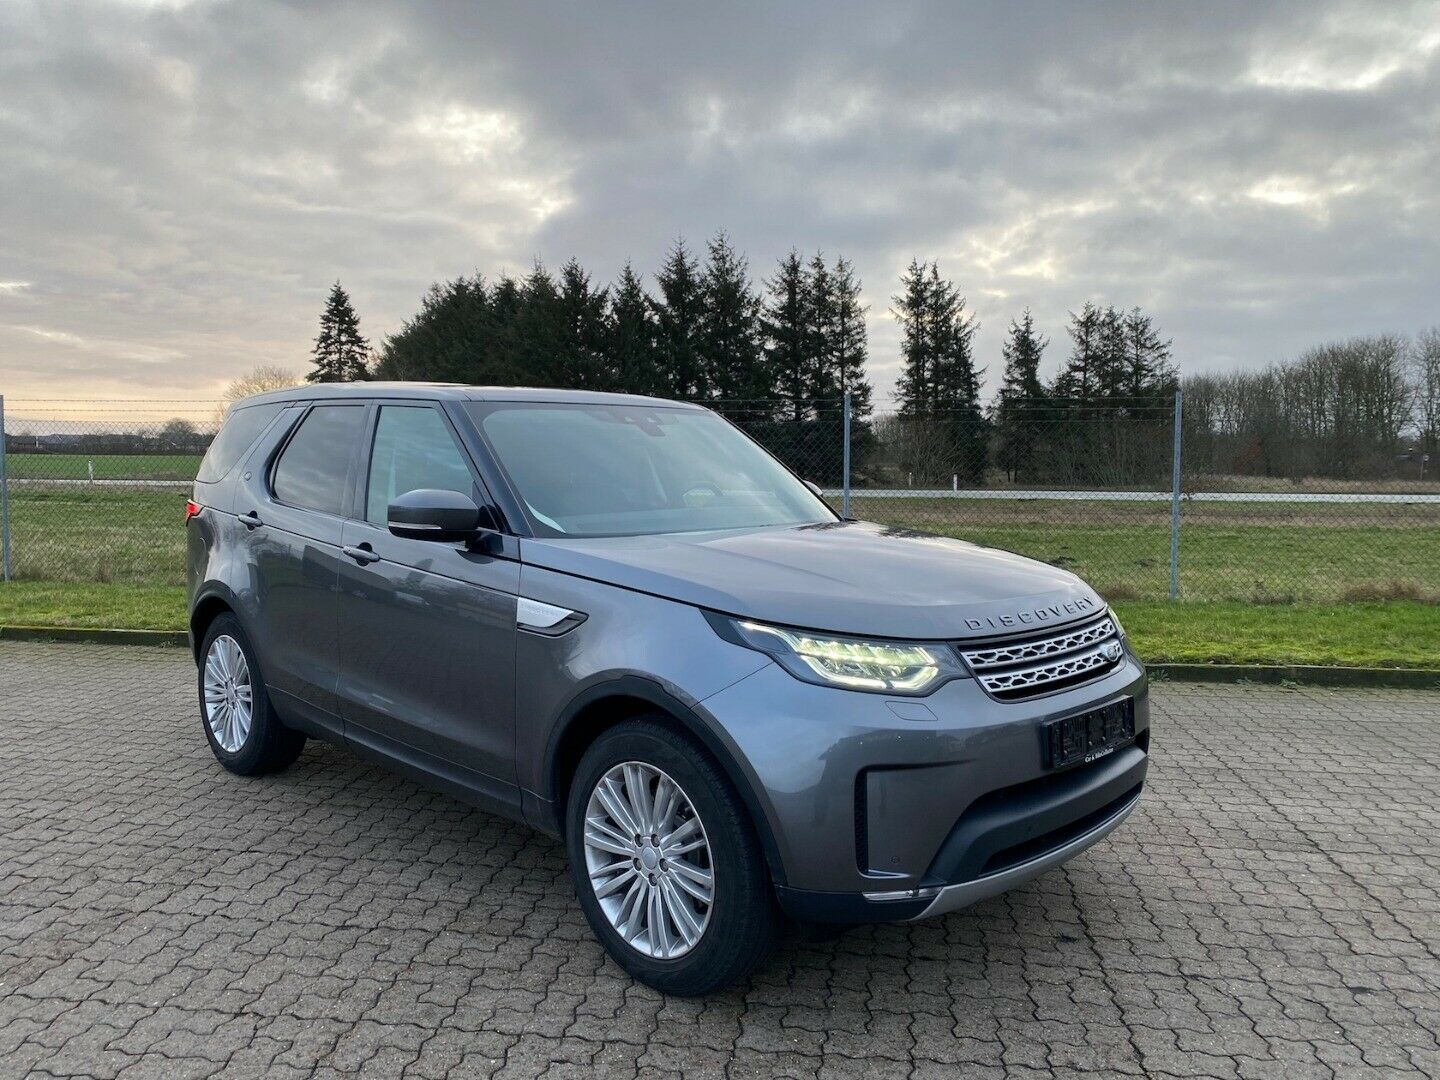 Land Rover Discovery 5 3,0 TD6 HSE aut. 7prs 5d